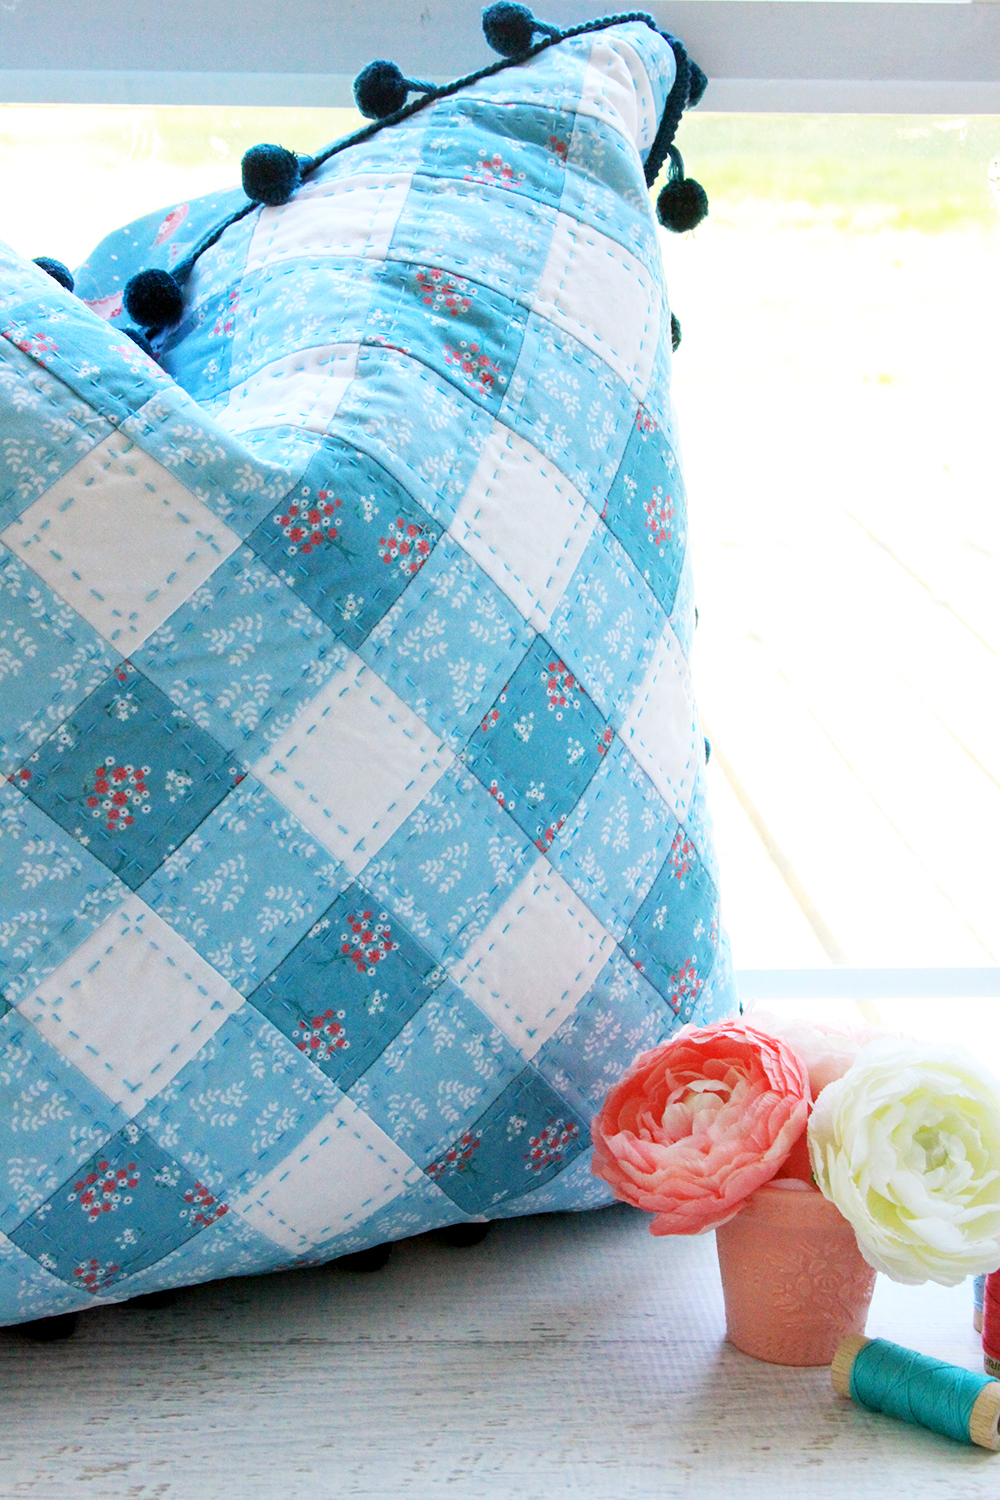 Teal Patchwork Pillow with Hand Quilting